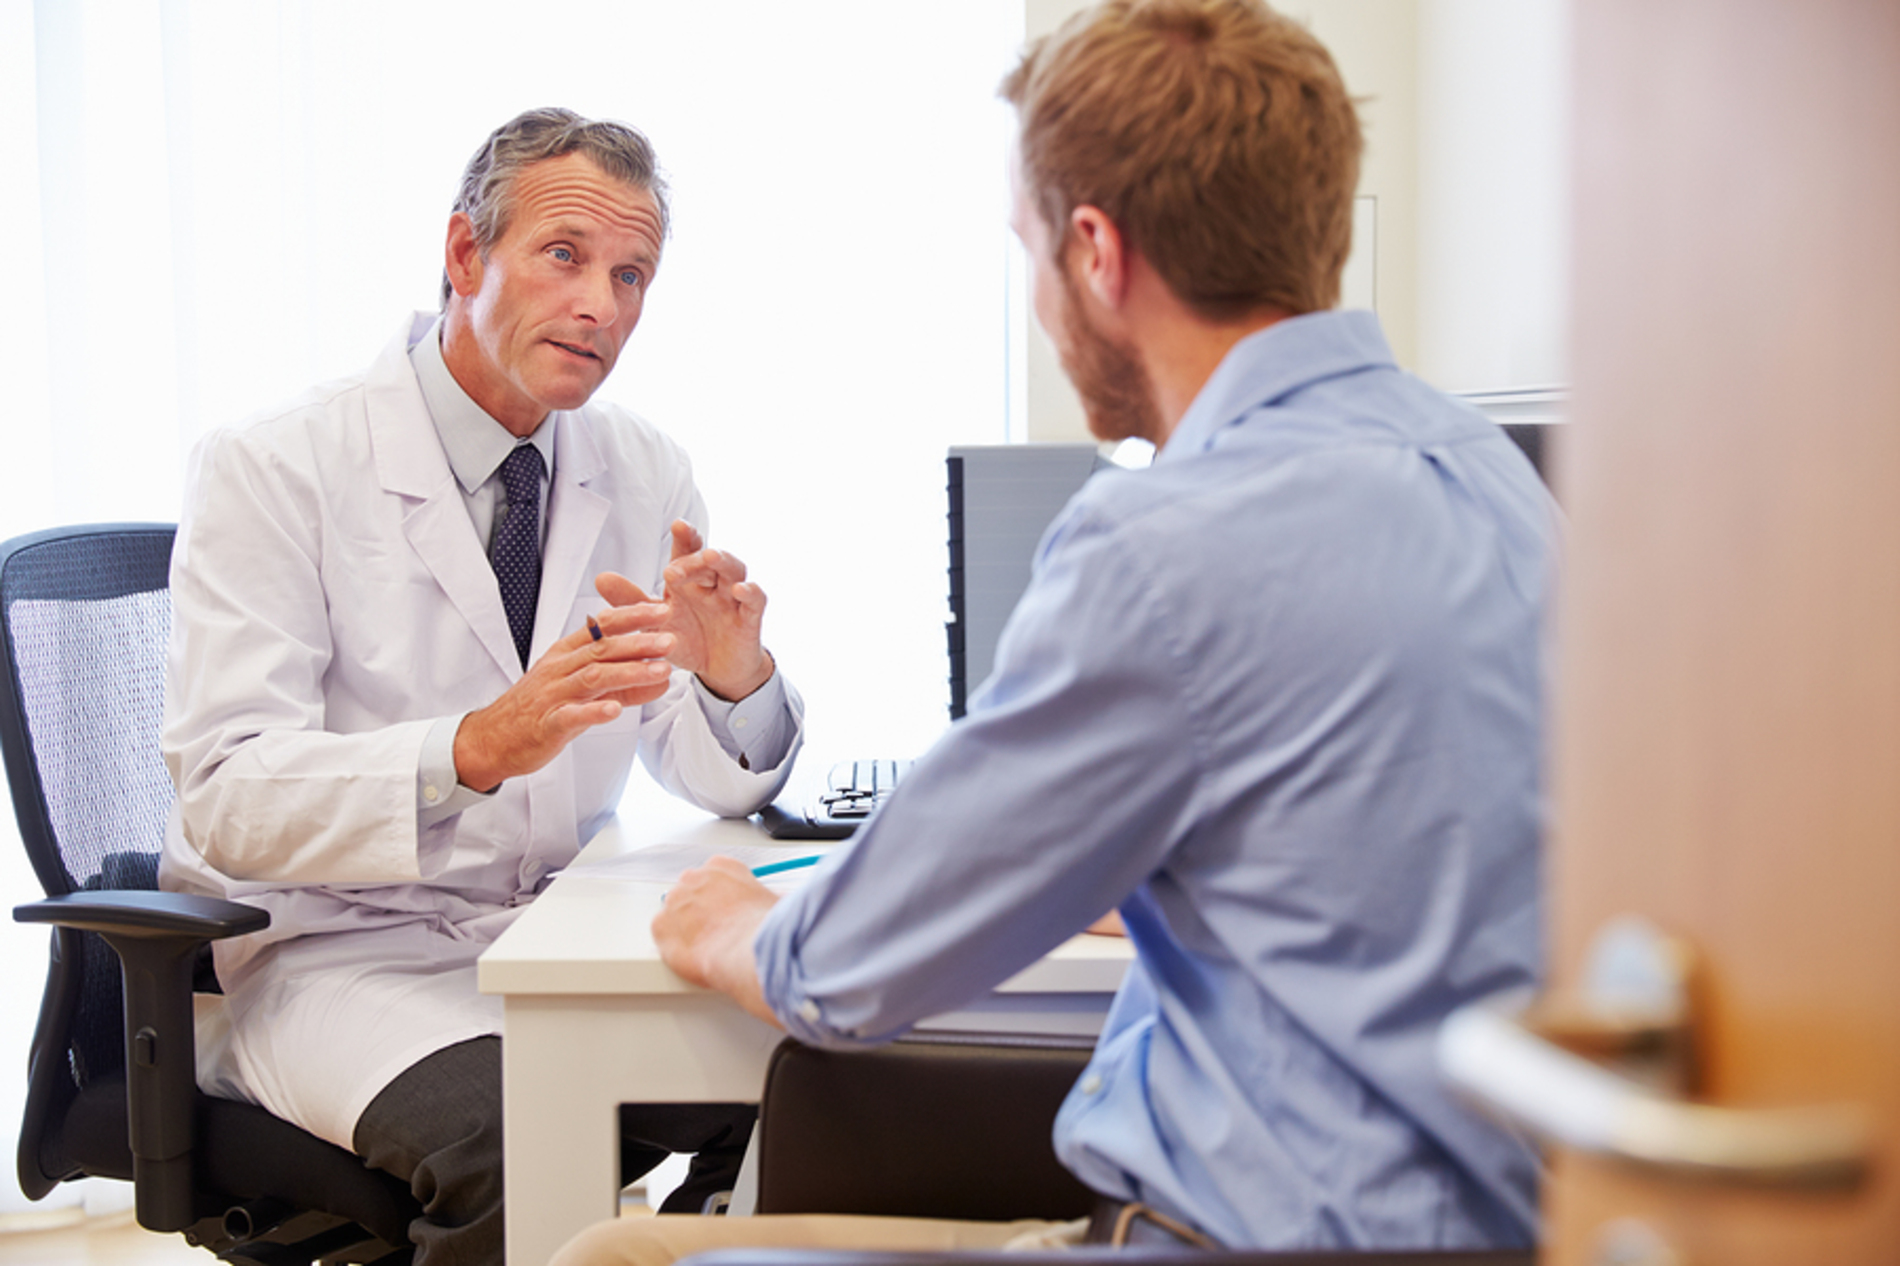 Medical doctor discussing information with a male patient.